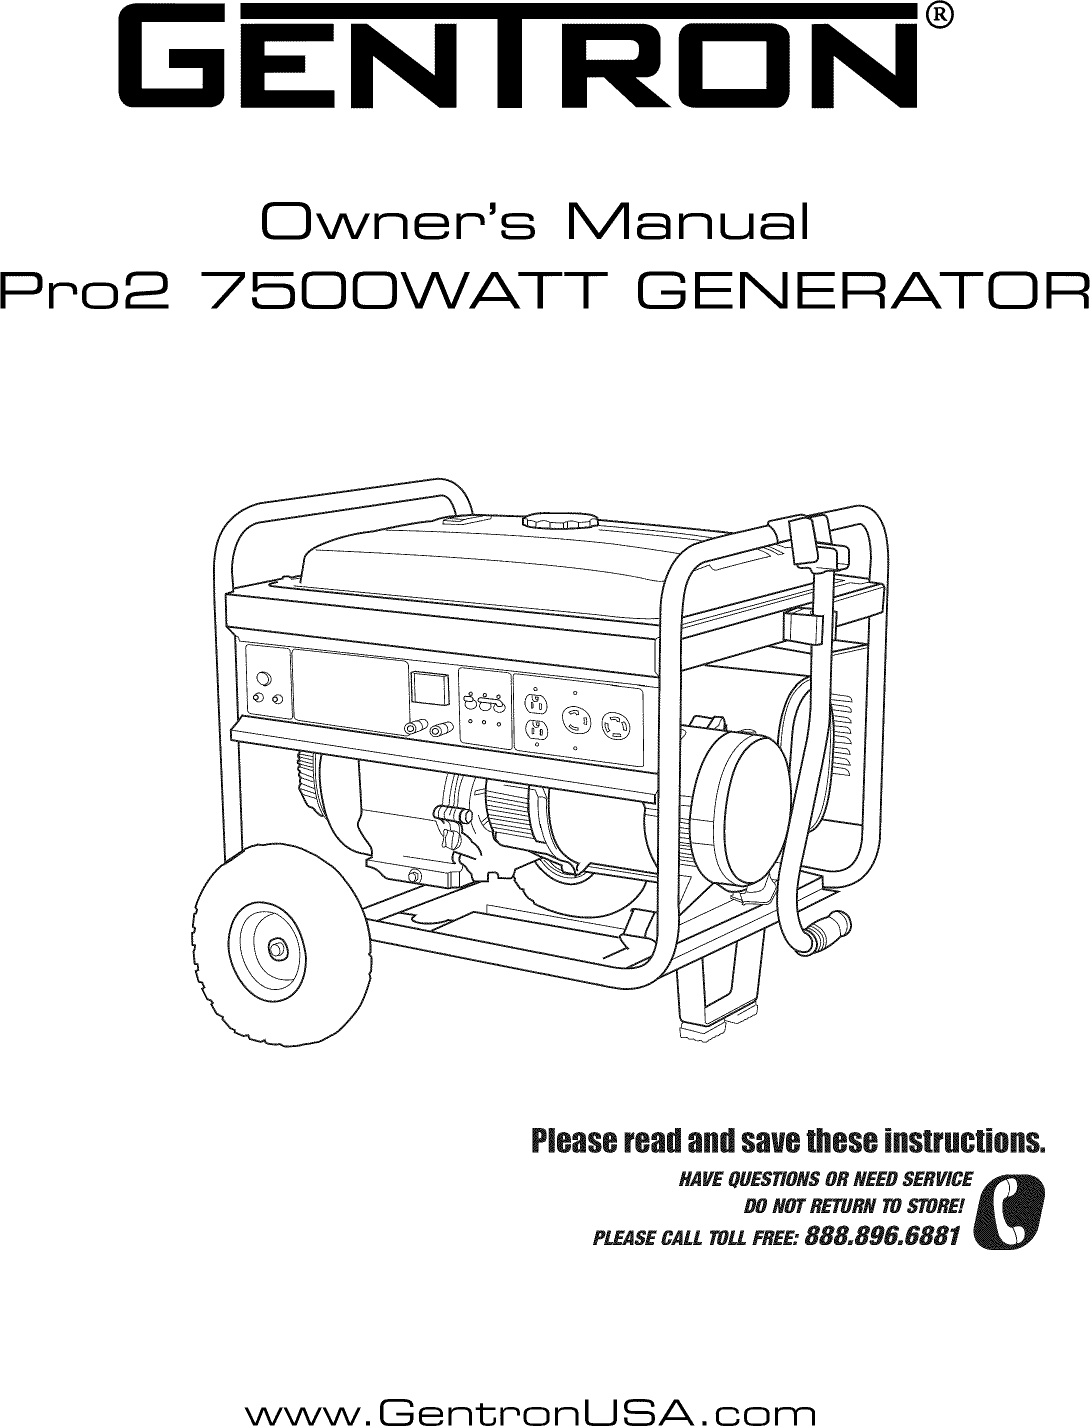 generator hookup to 220 volt fuse subpanel page 2